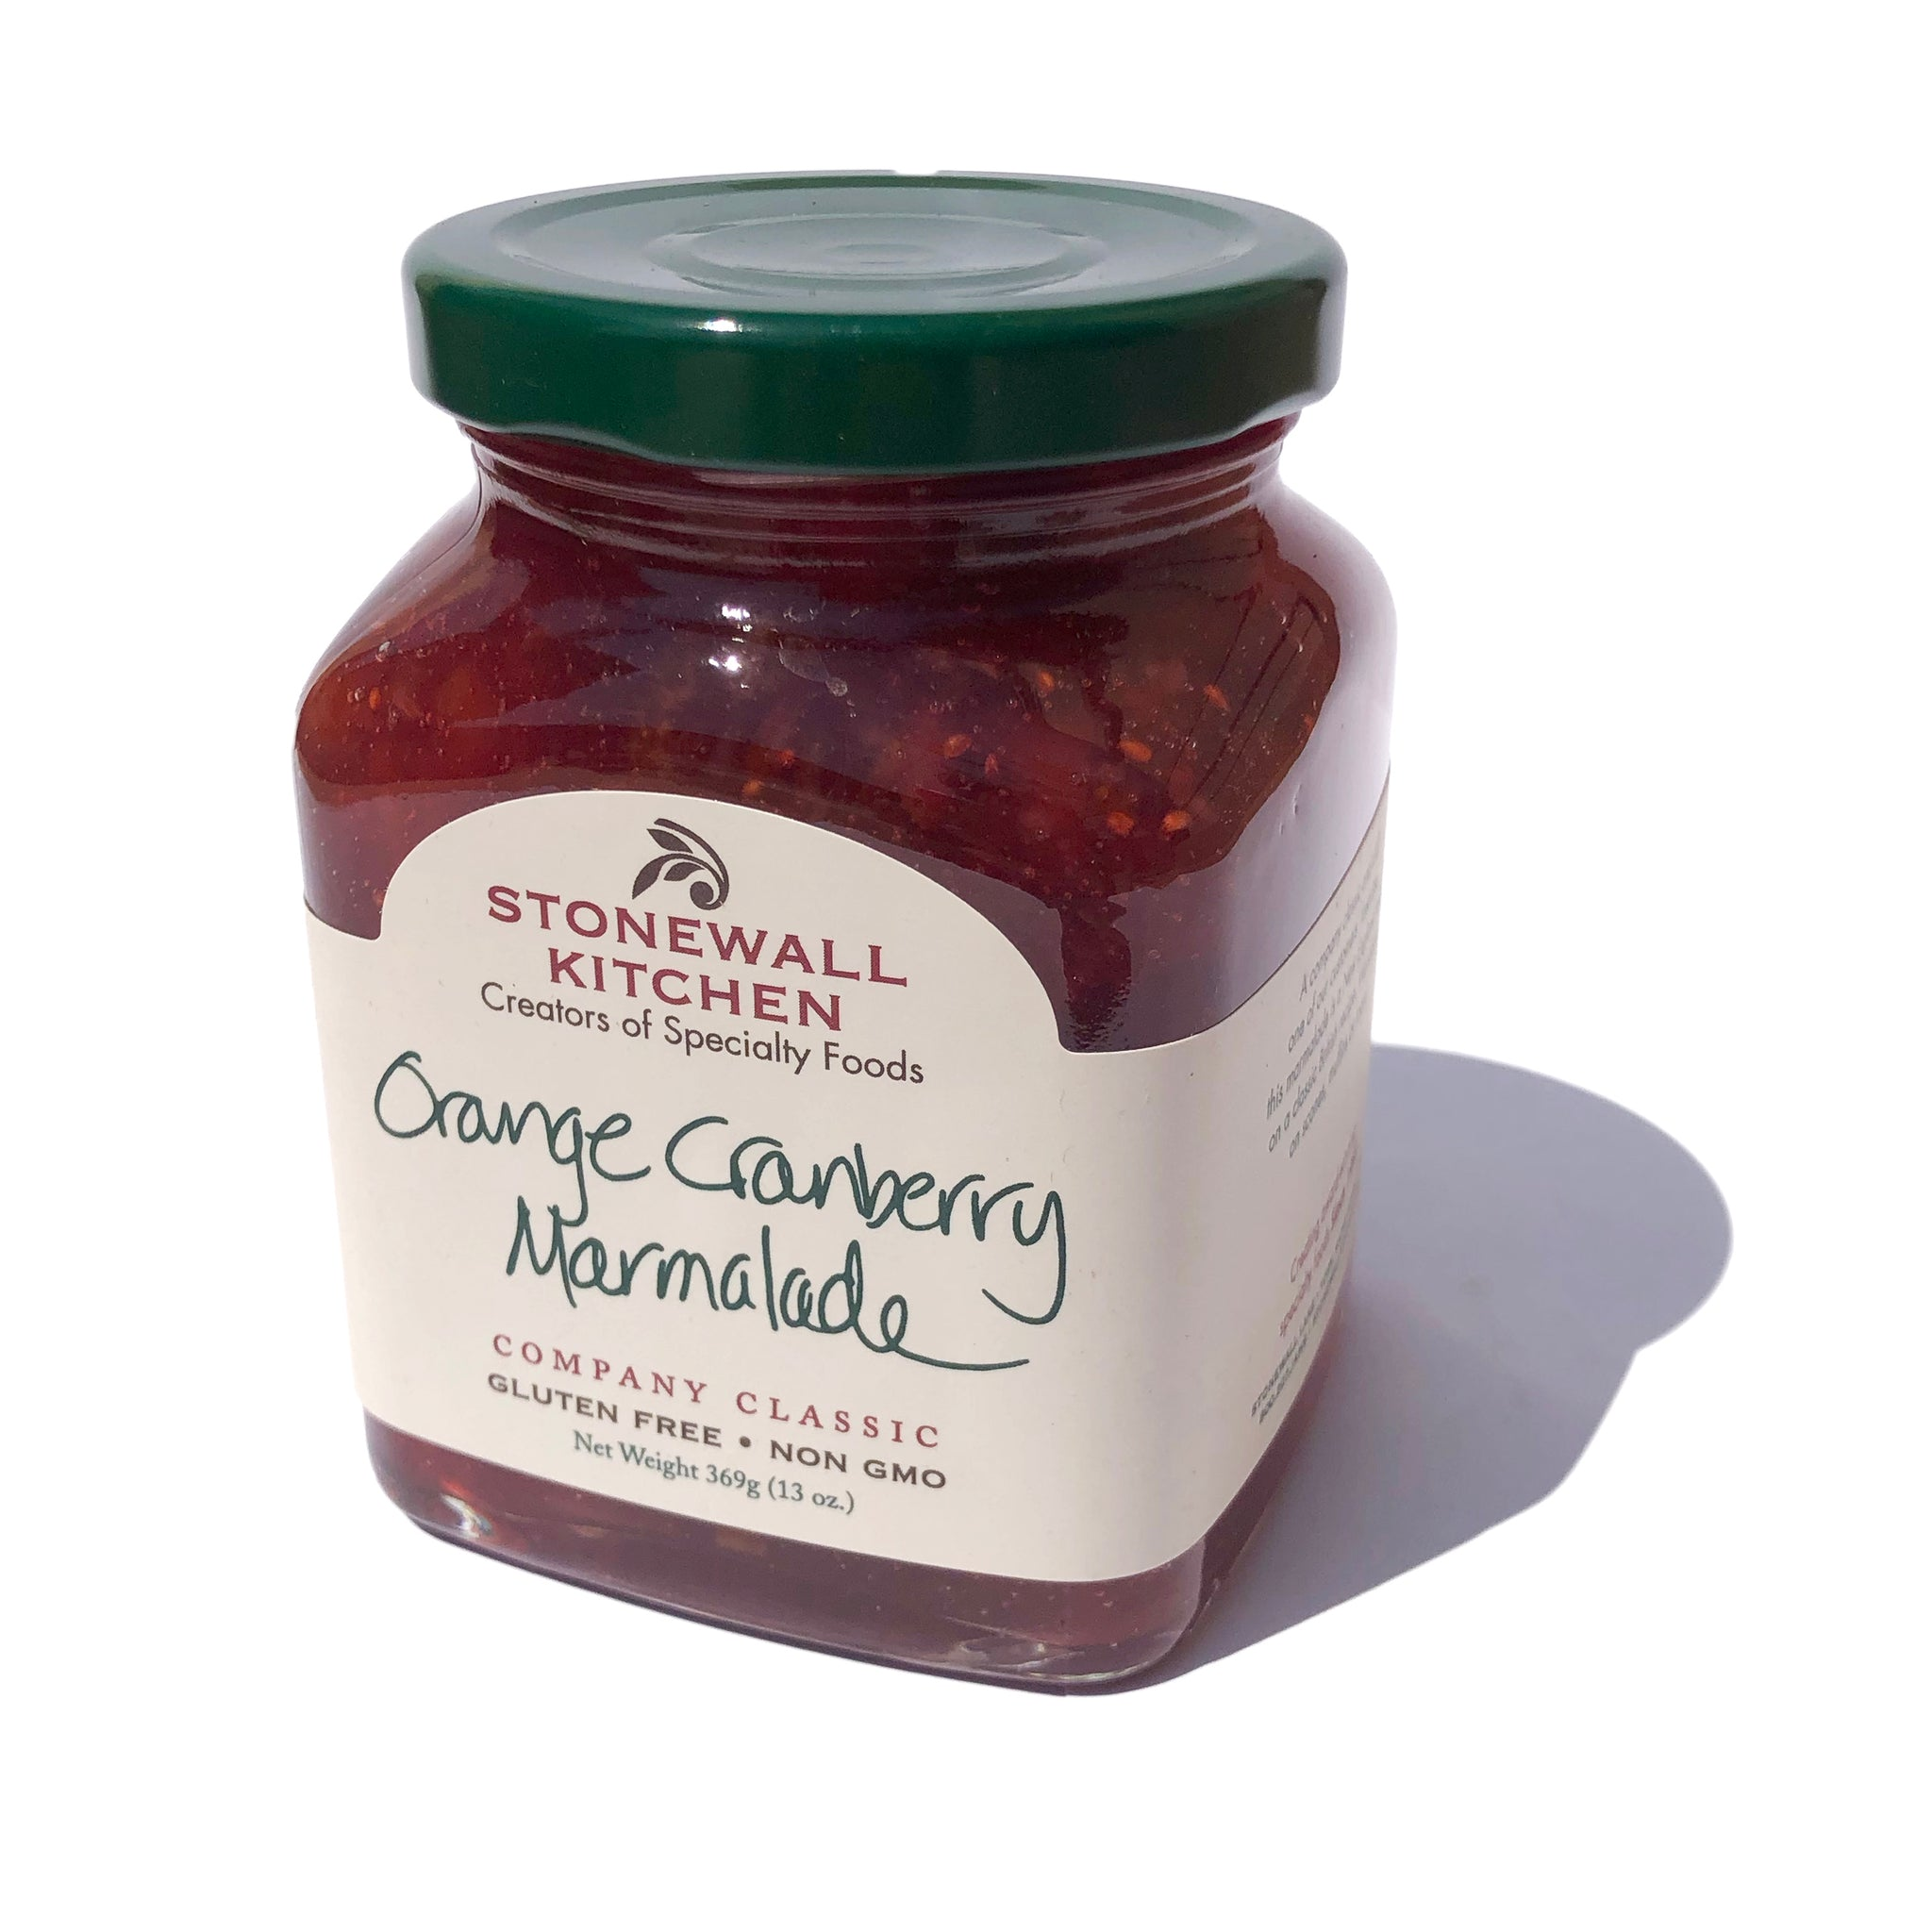 Stonewall Kitchen - Orange Cranberry Marmalade, 13oz